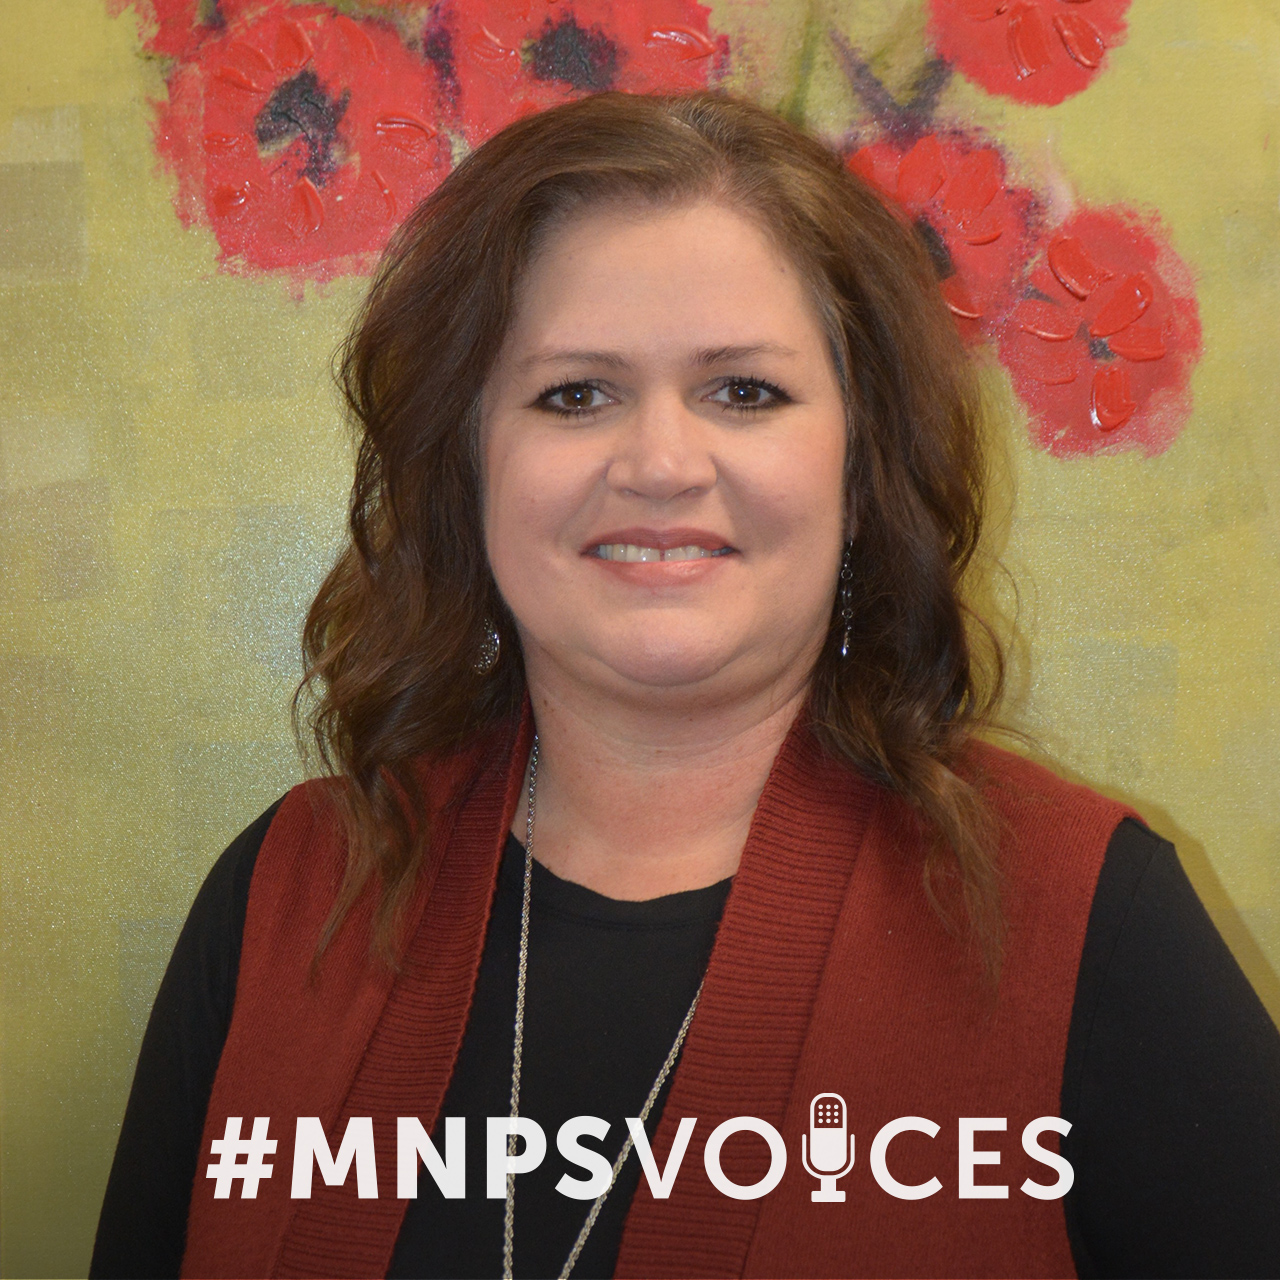 #MNPSVoices:  Julie Fulcher, Benefits Specialist